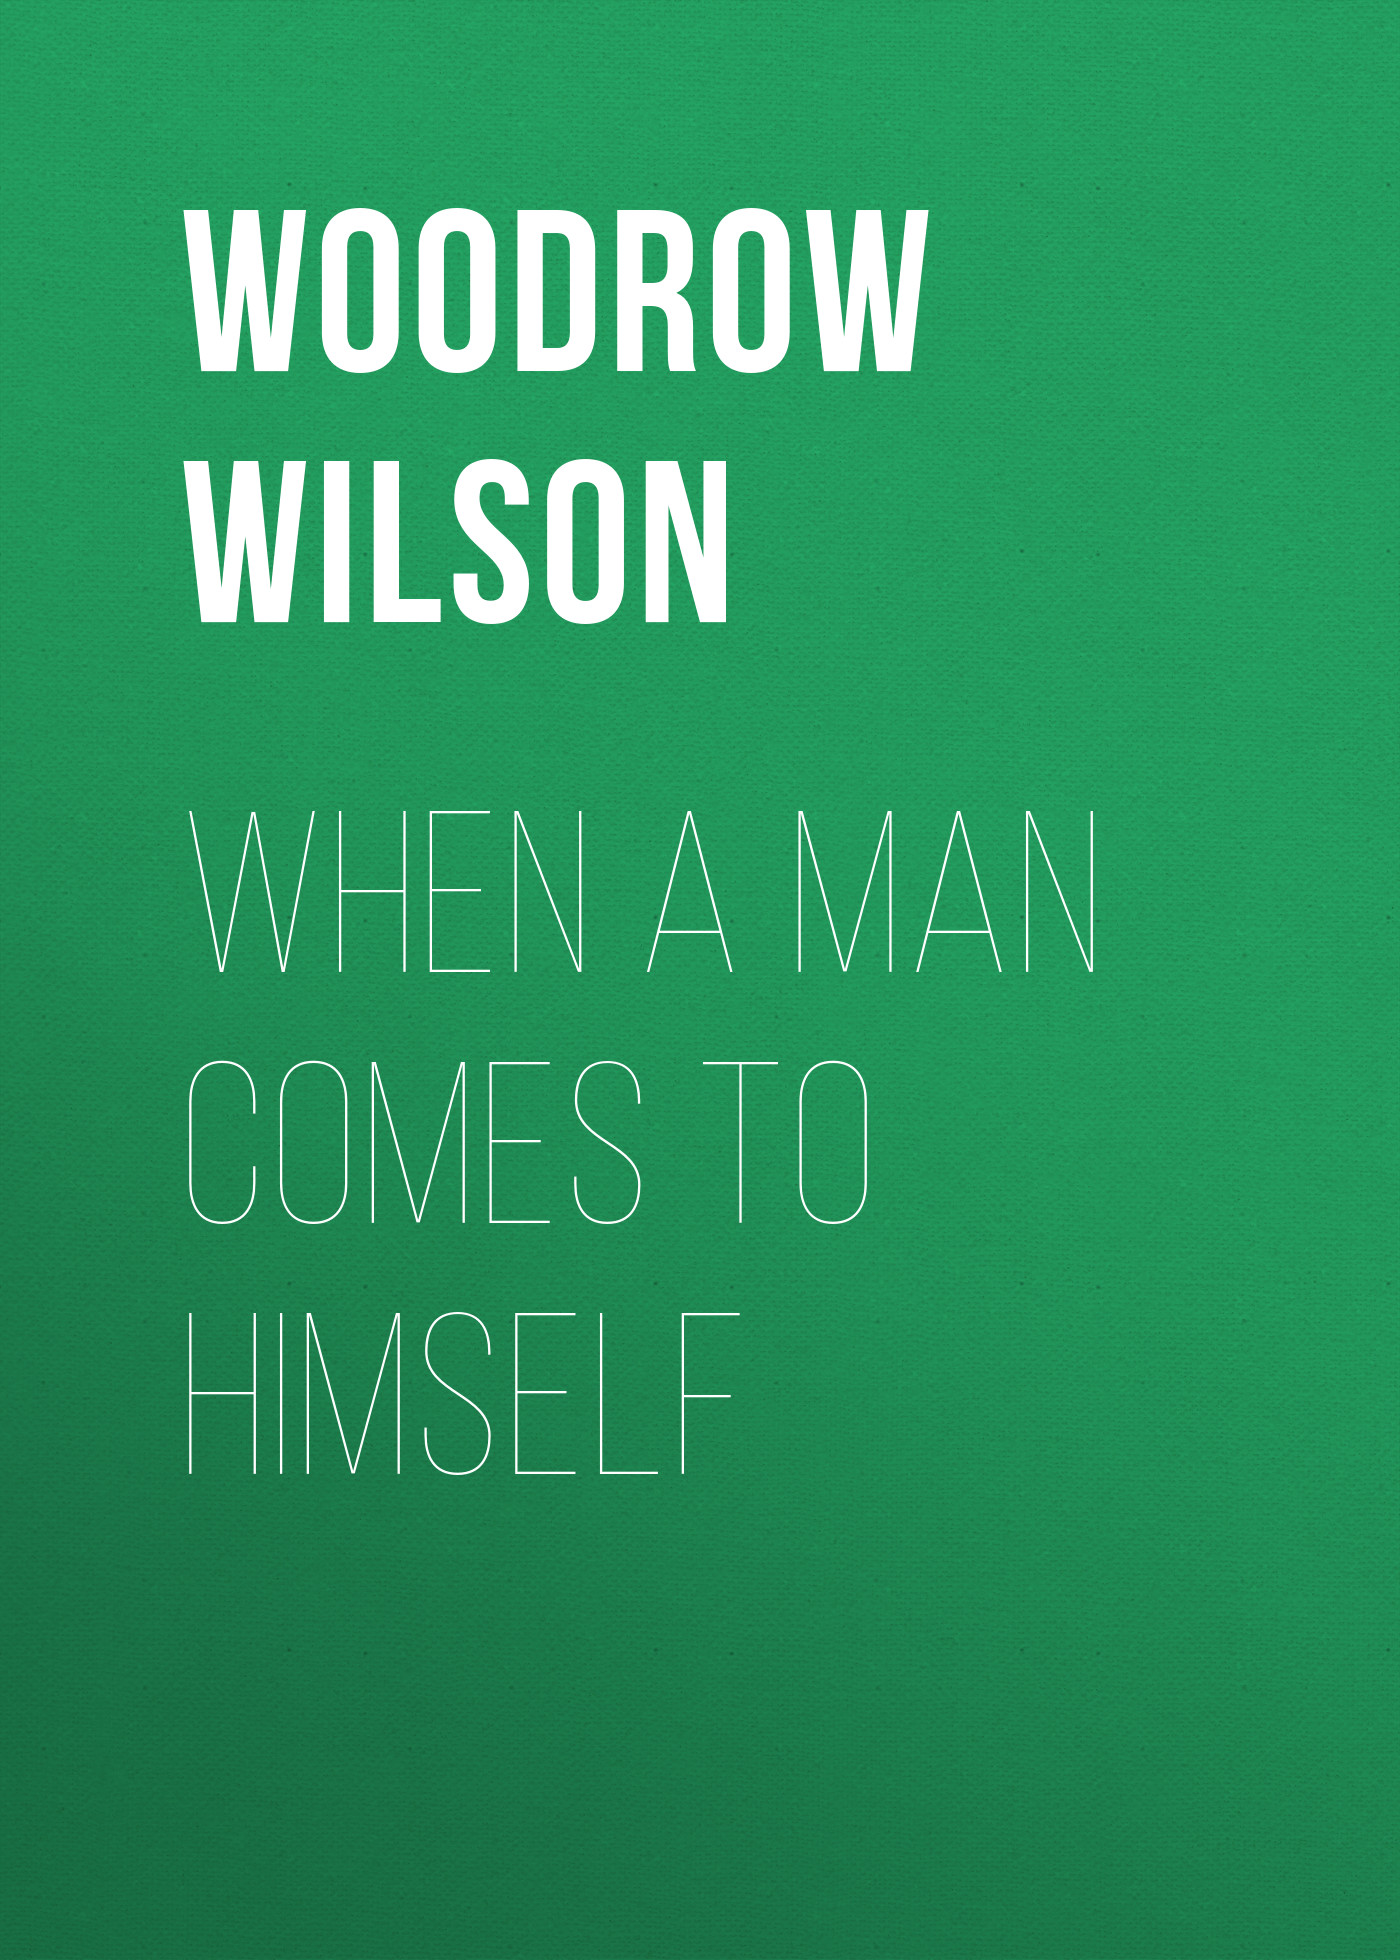 Фото - Woodrow Wilson When a Man Comes to Himself woodrow wilson divison and reunion 1829 1889